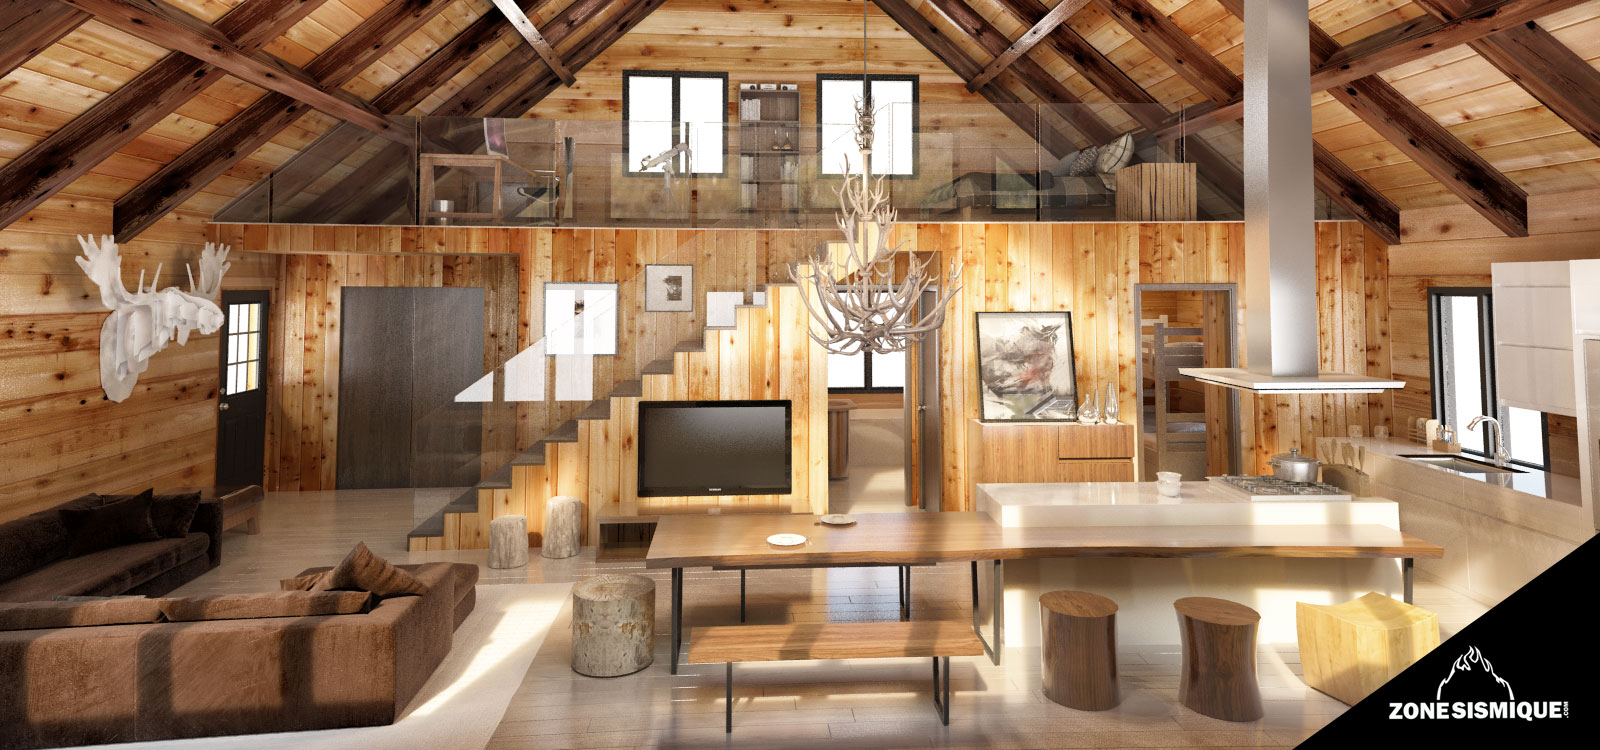 Plan interieur maison en bois for Bois de chalet